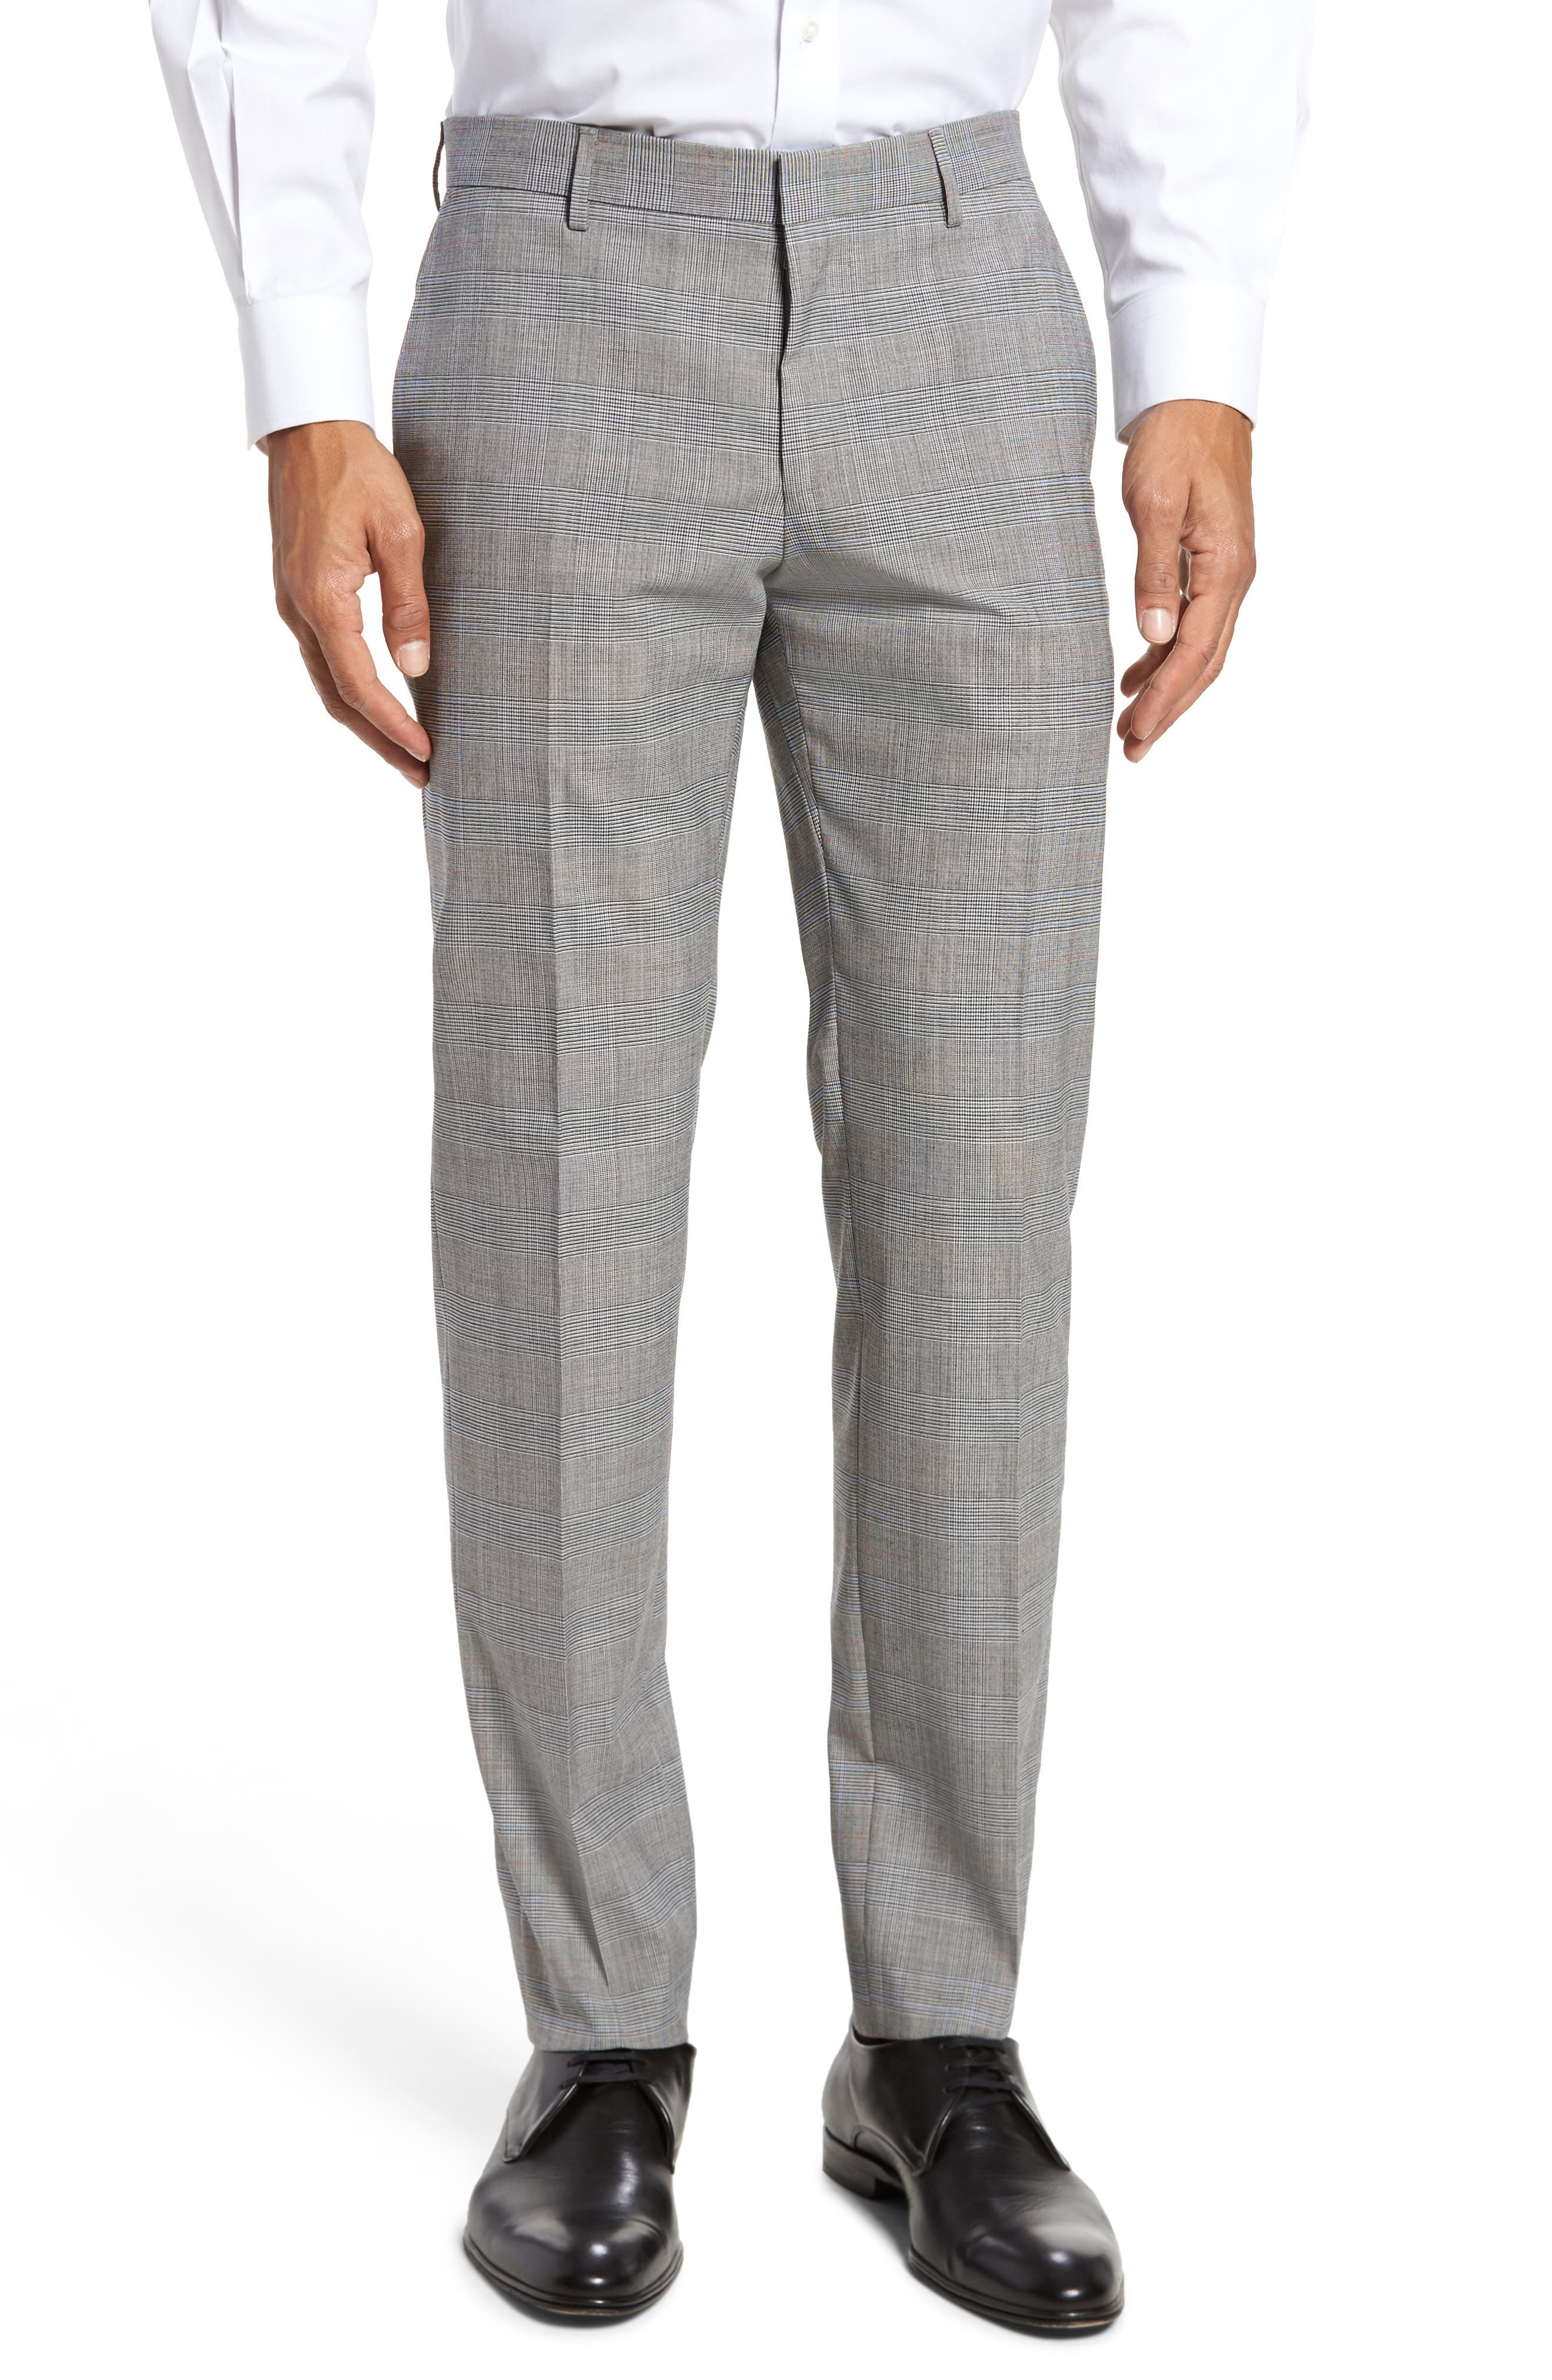 Benso Flat Front Plaid Wool Blend Trousers,                             Main thumbnail 1, color,                             061